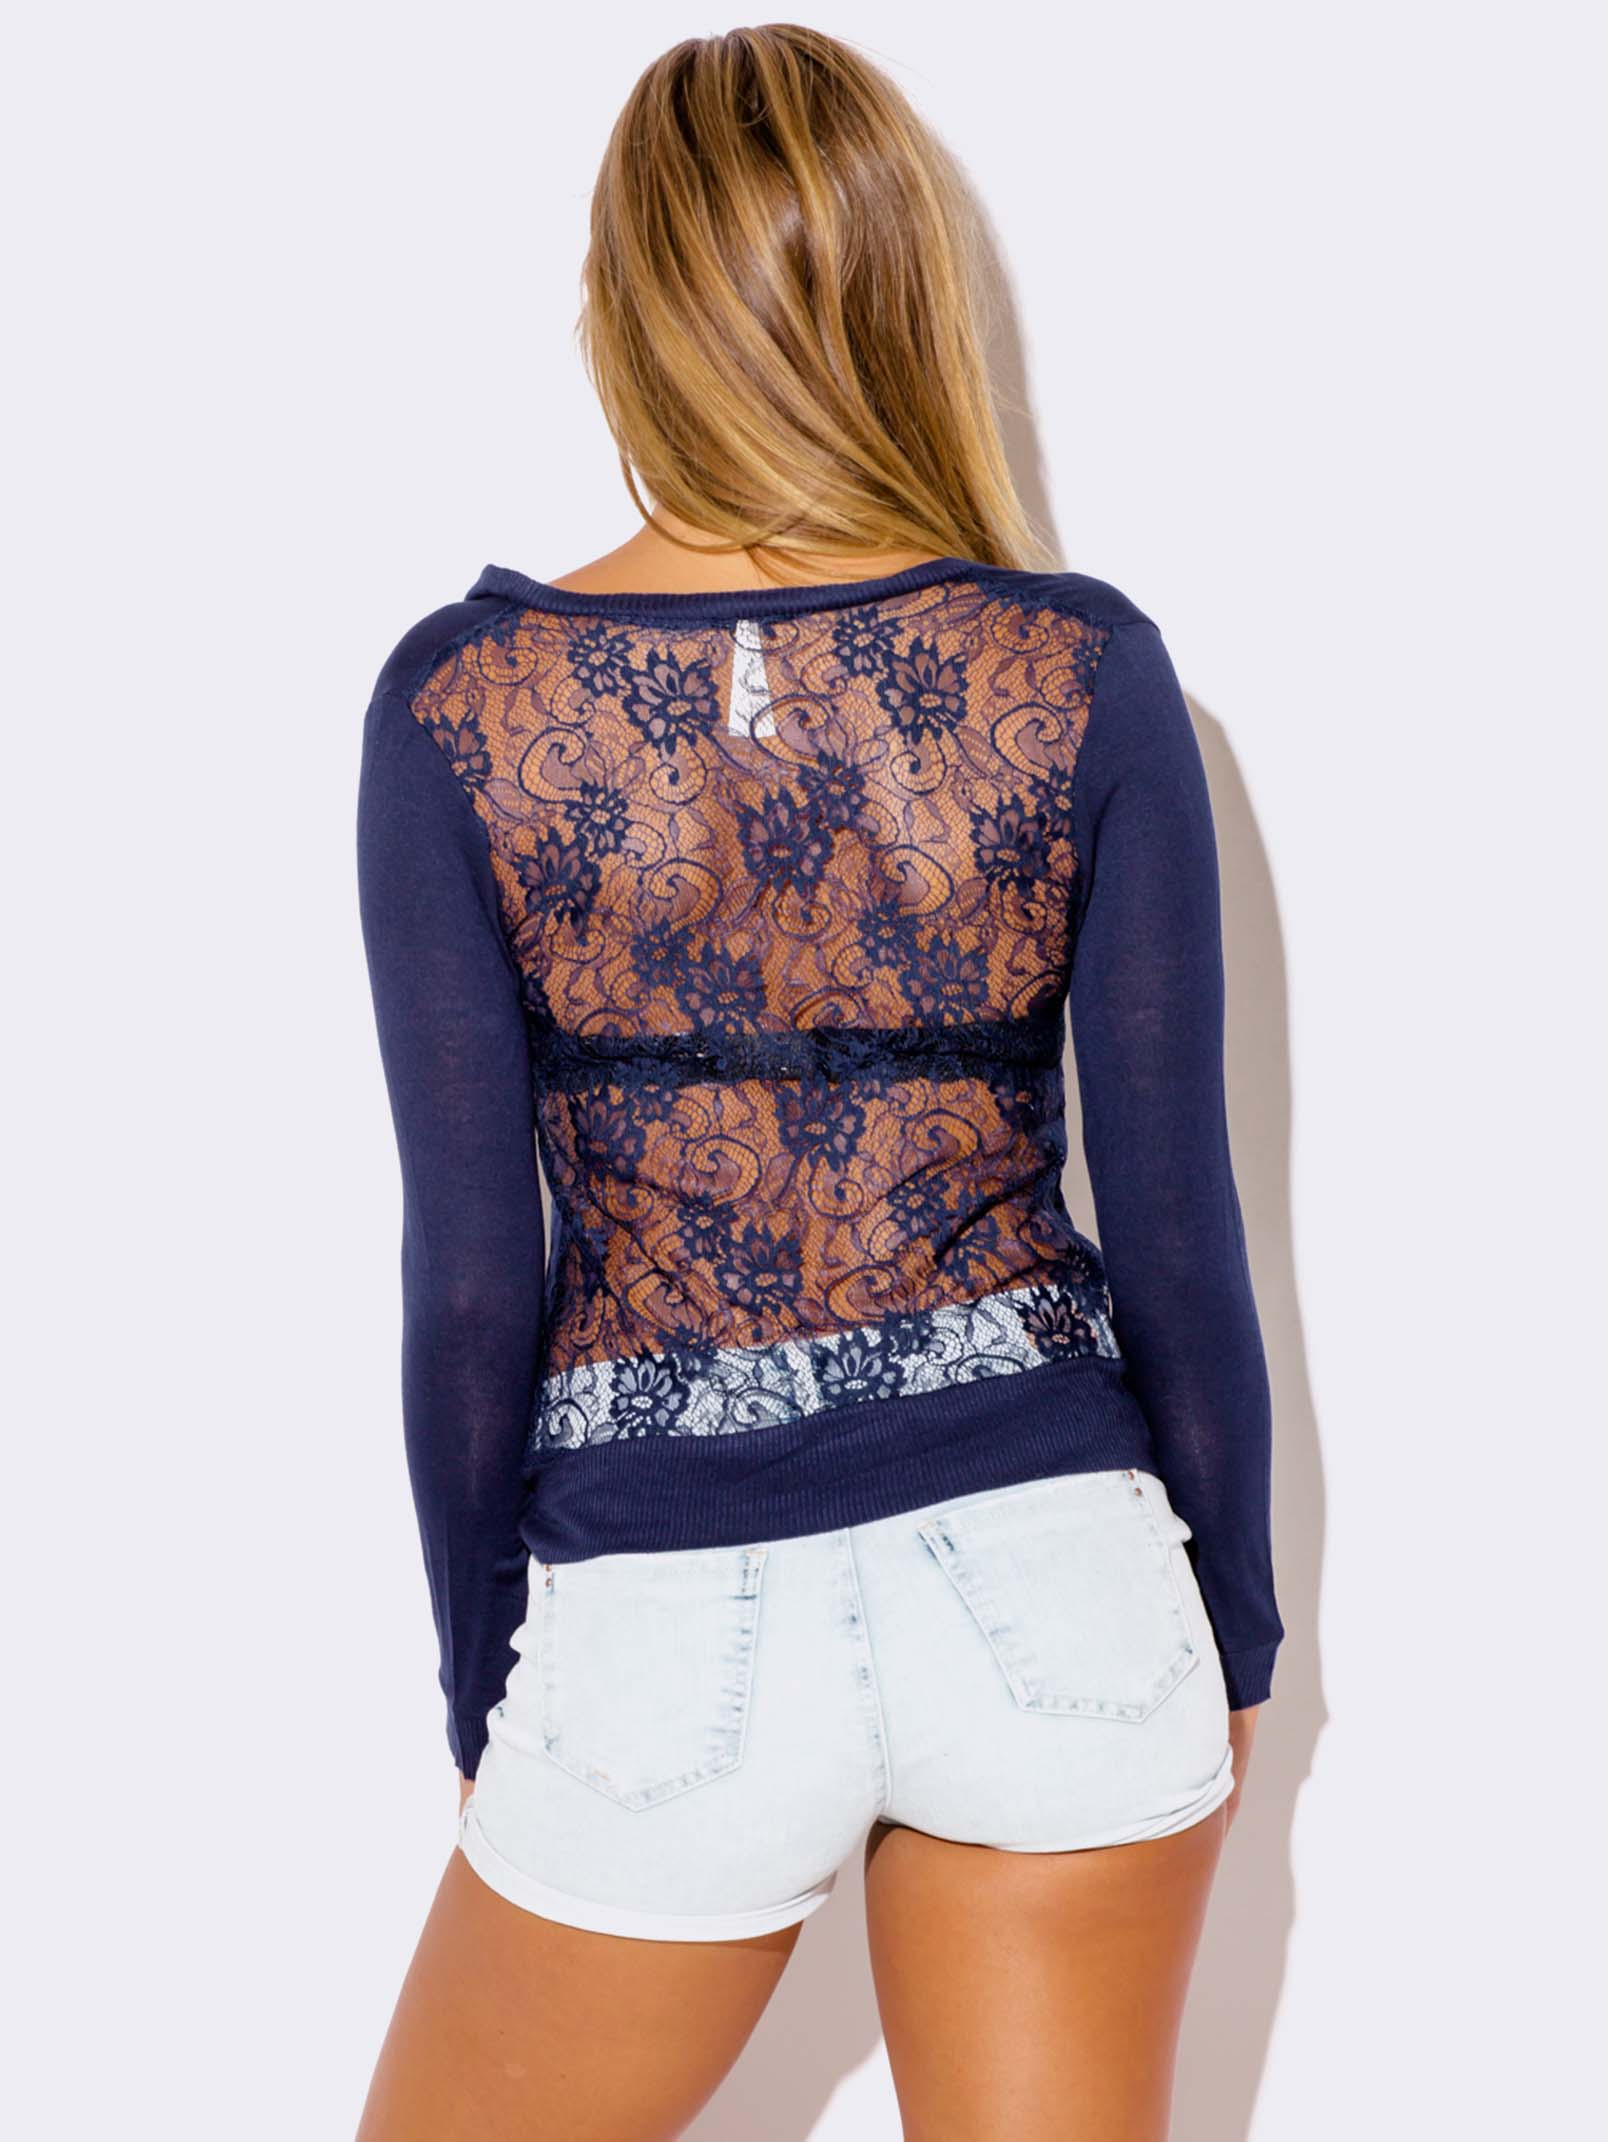 NAVY BLUE LACE BACK CARDIGAN SWEATER - ModishOnline.com